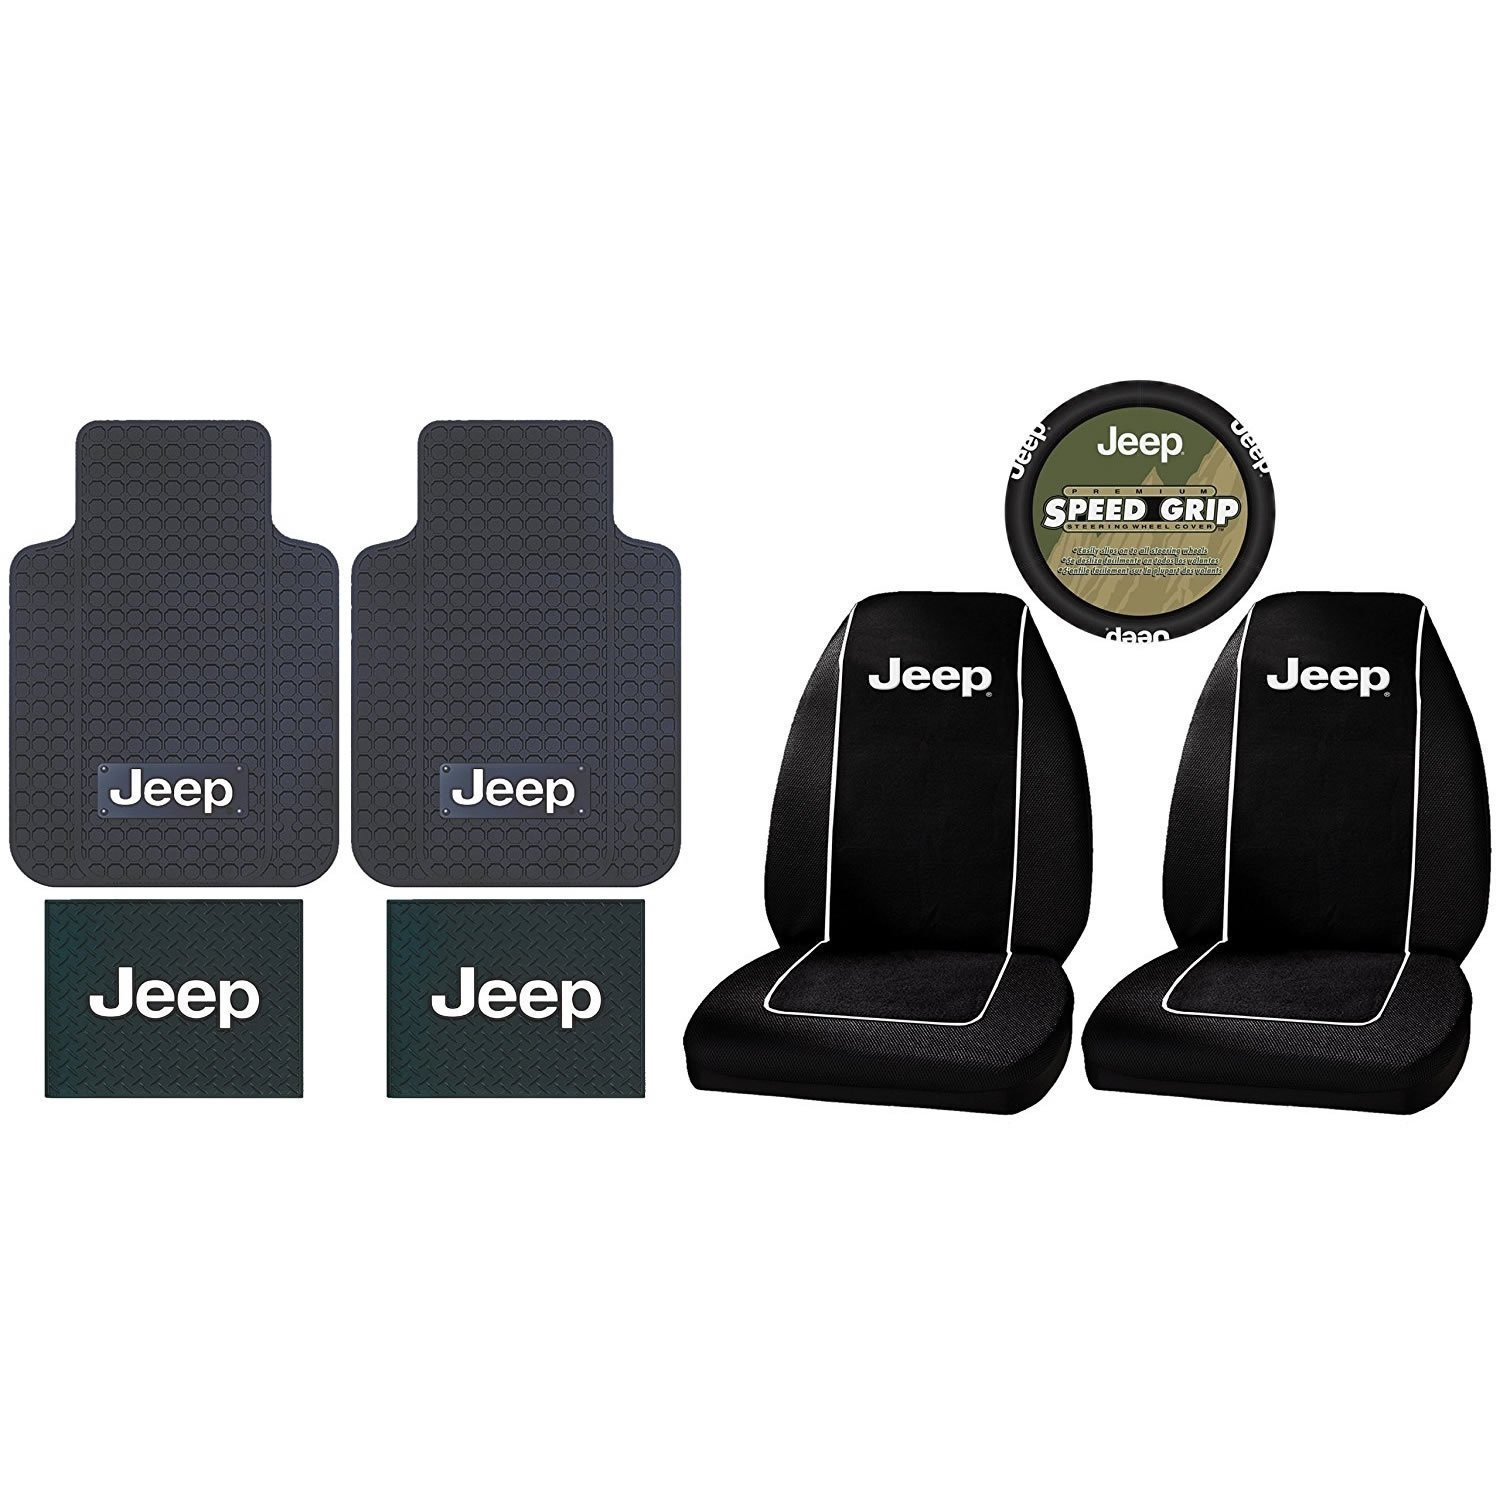 storage ballistic cordura covers products coverking with jk custom tactical system molle jeep for wrangler seat fit